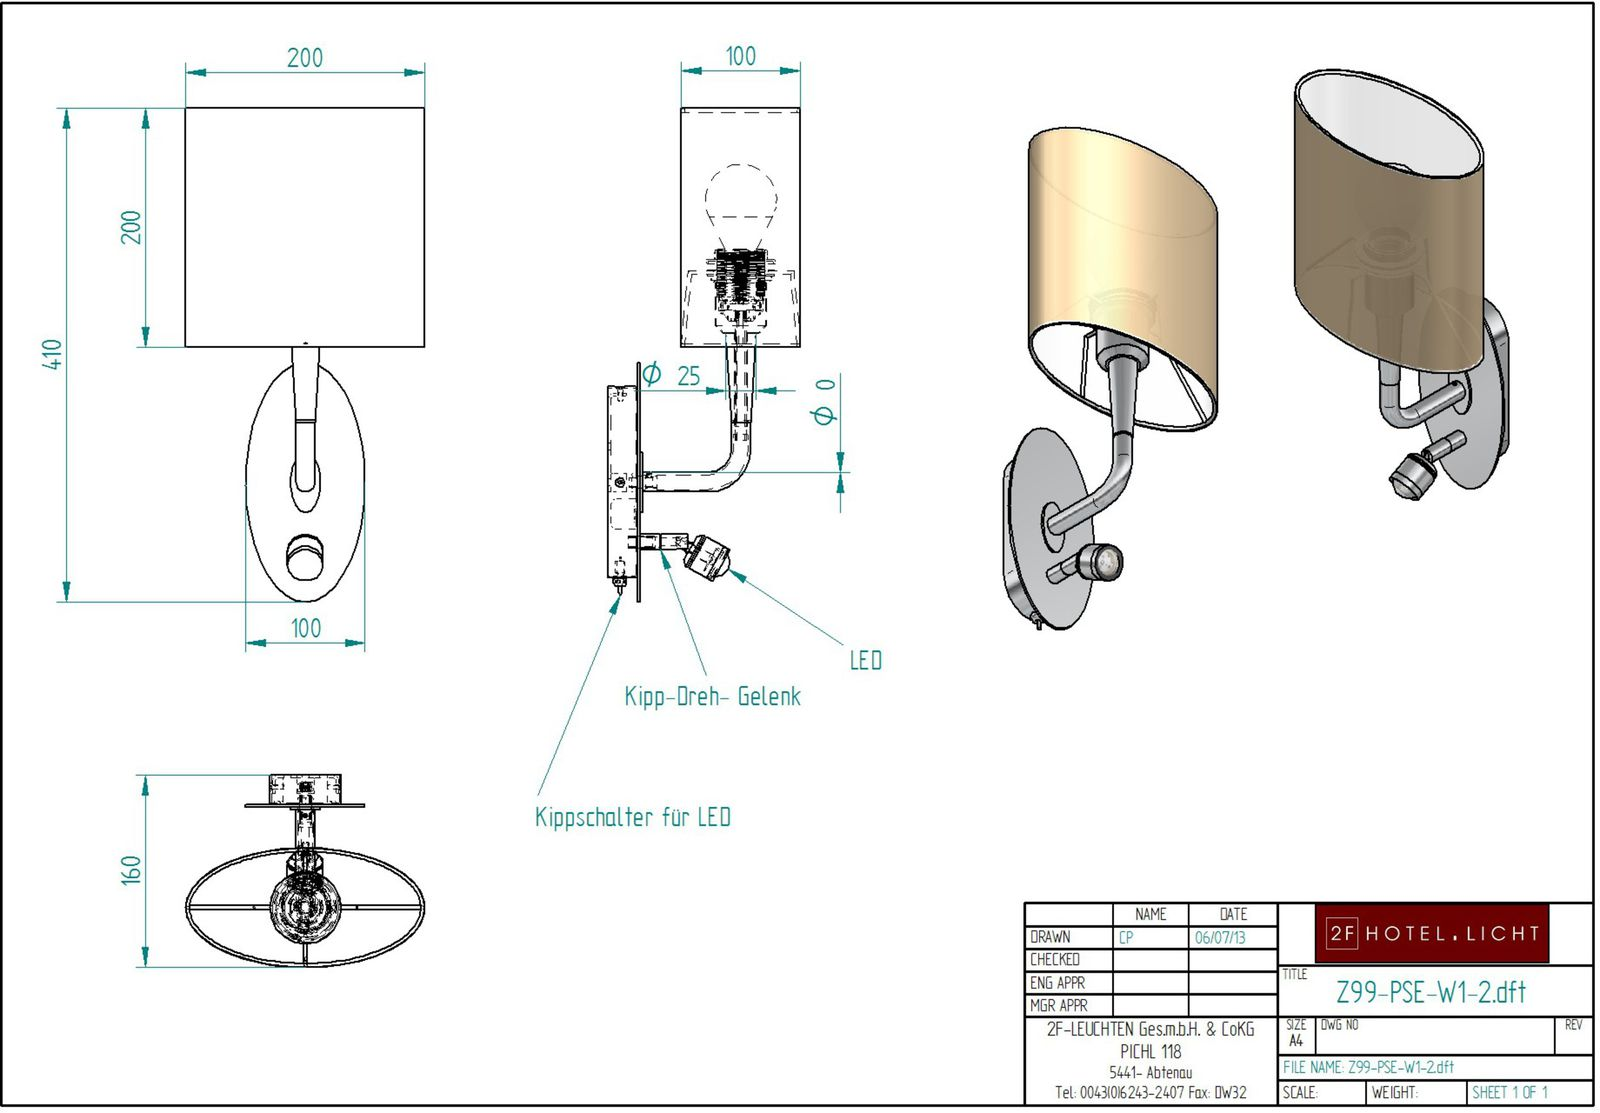 ceiling lamp Pure Seed, lenght=160mm, wide=200mm, height=465, surface: brushed brass, techn. details: 1xE27, max. 40W/230V + 2W LED 700mA